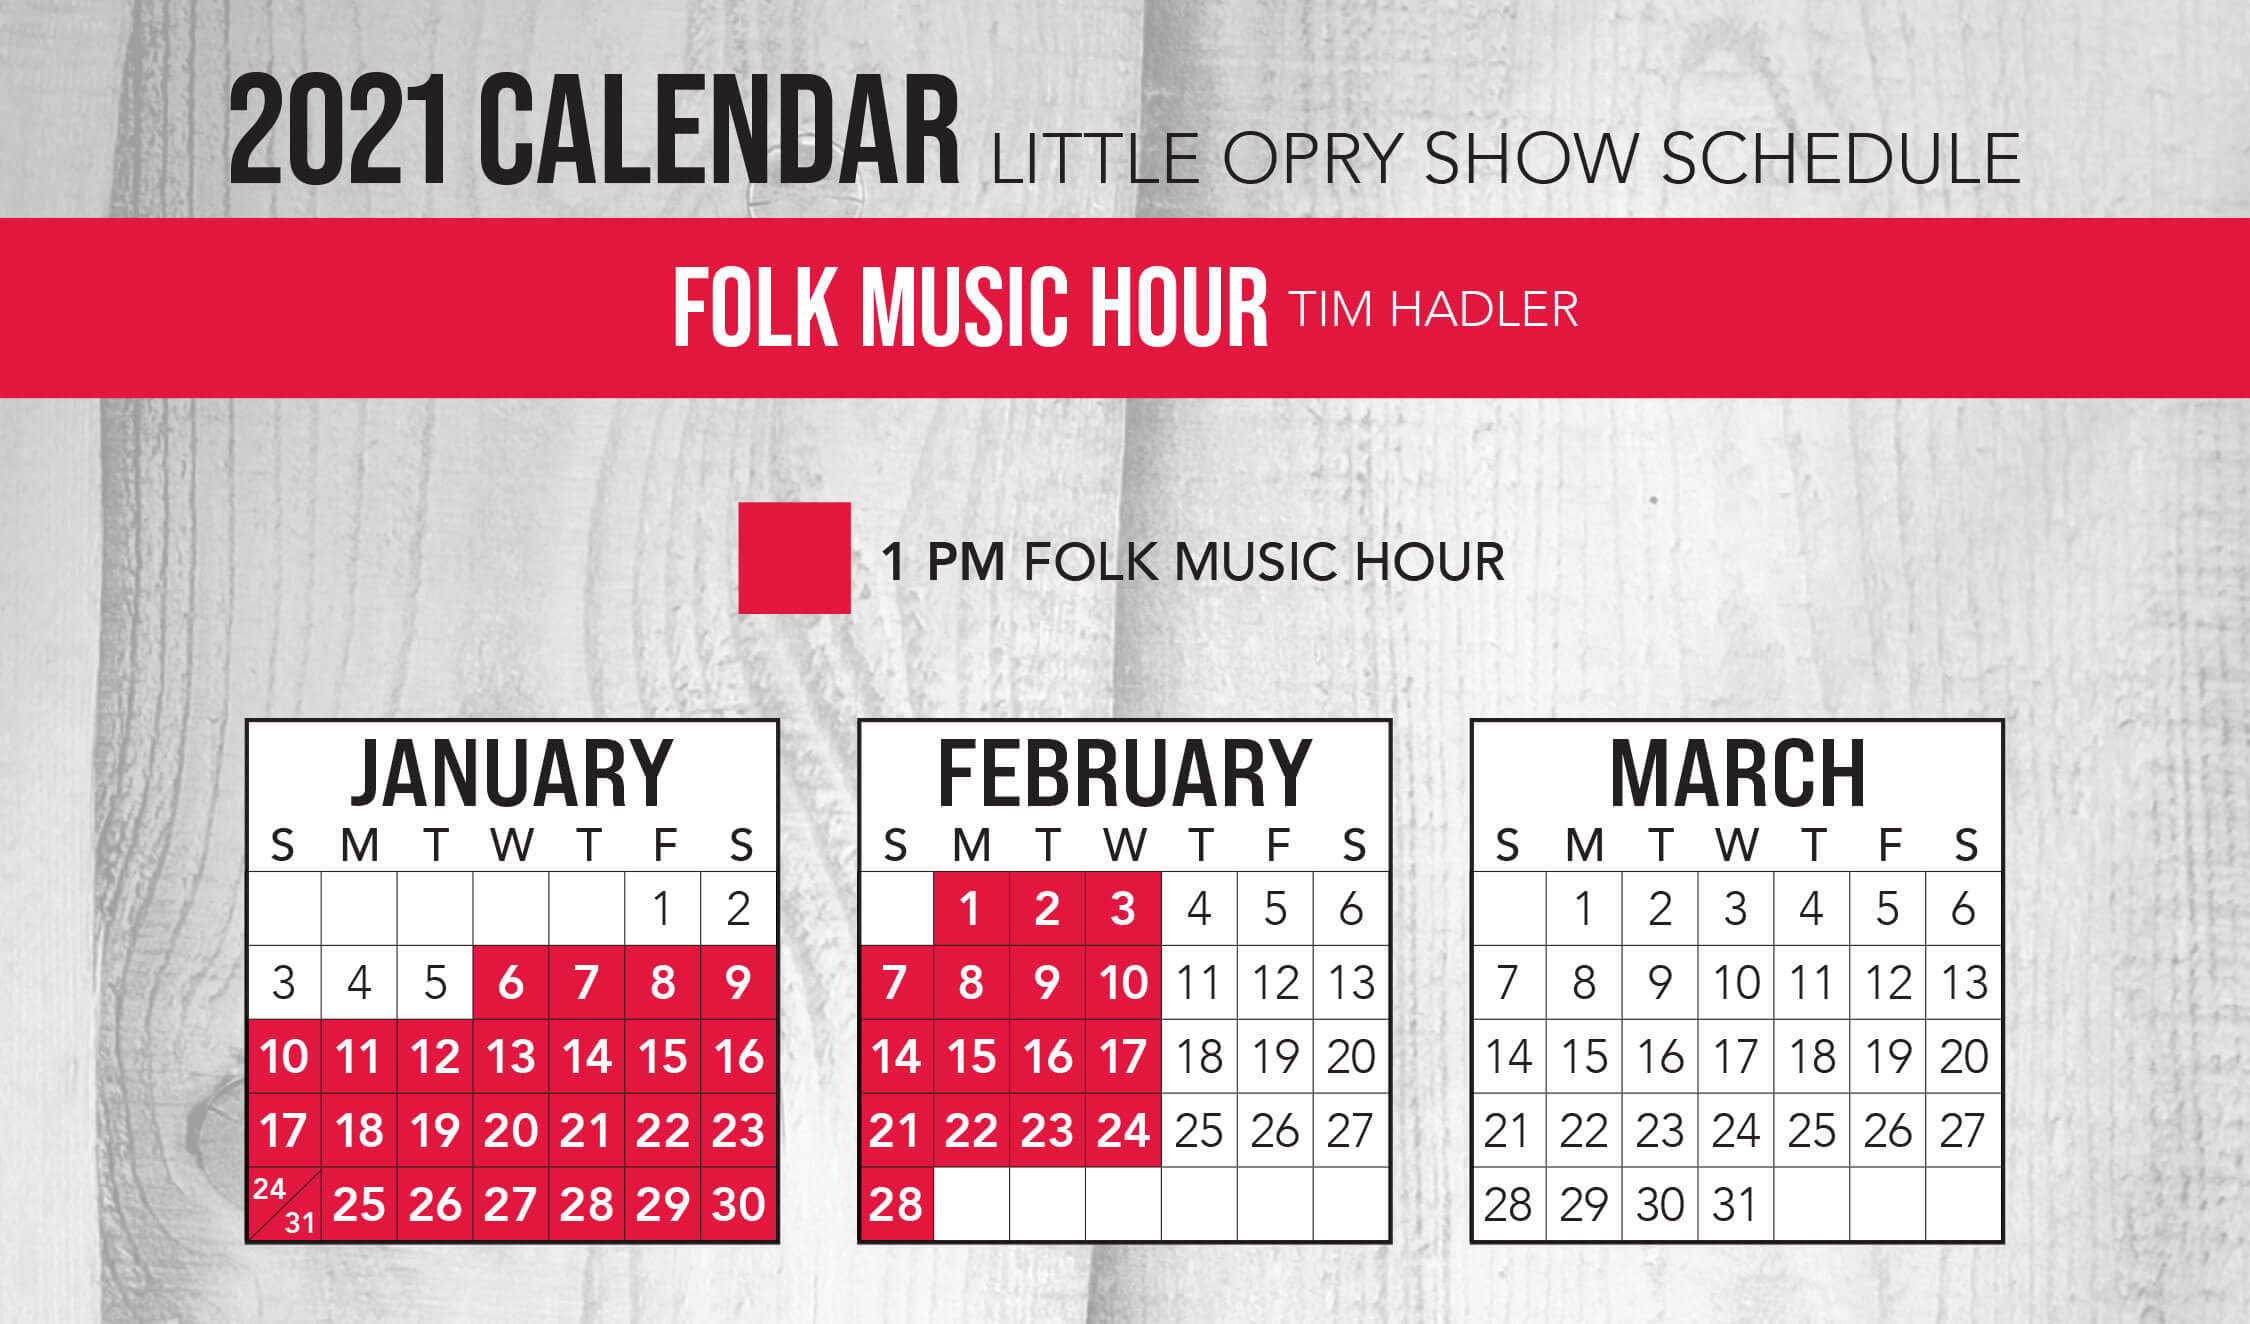 Folk Music Hour 2021 Schedule